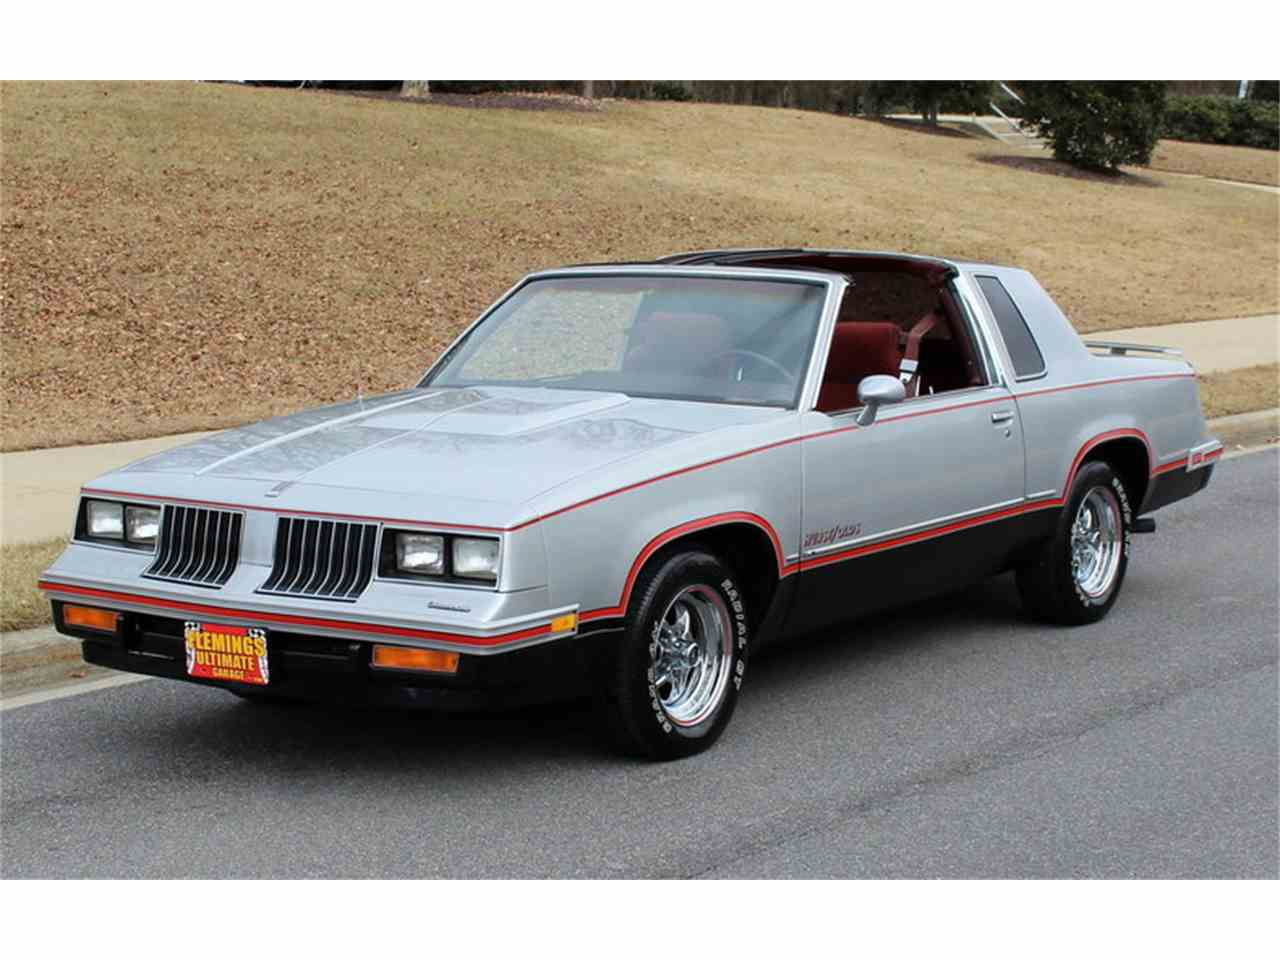 1984 Oldsmobile Hurst for Sale | ClassicCars.com | CC-1058351